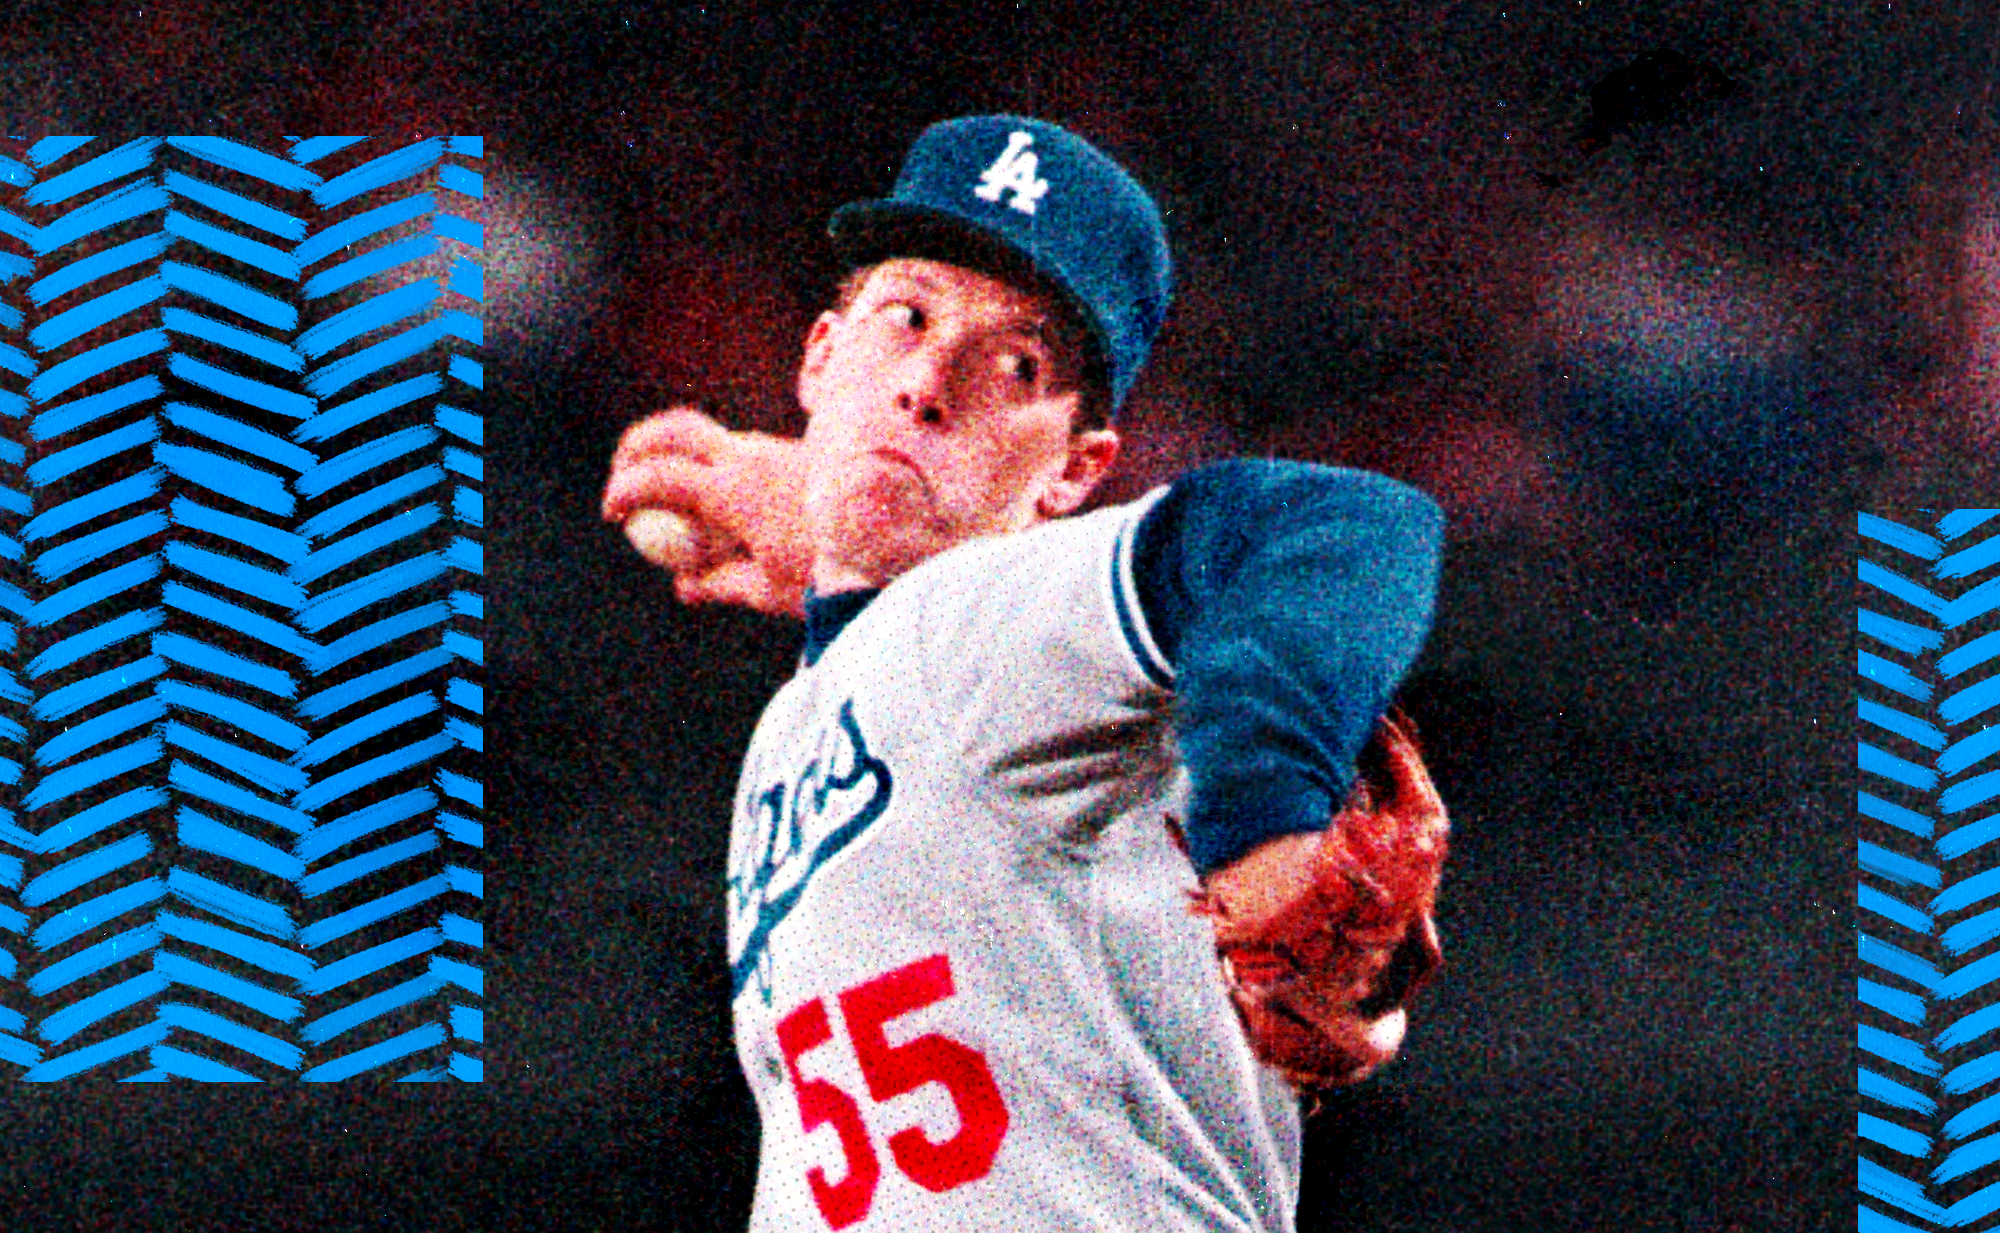 A head-on image of 1980s Dodgers pitcher Orel Hershiser winding up to throw a pitch in an away uniform.